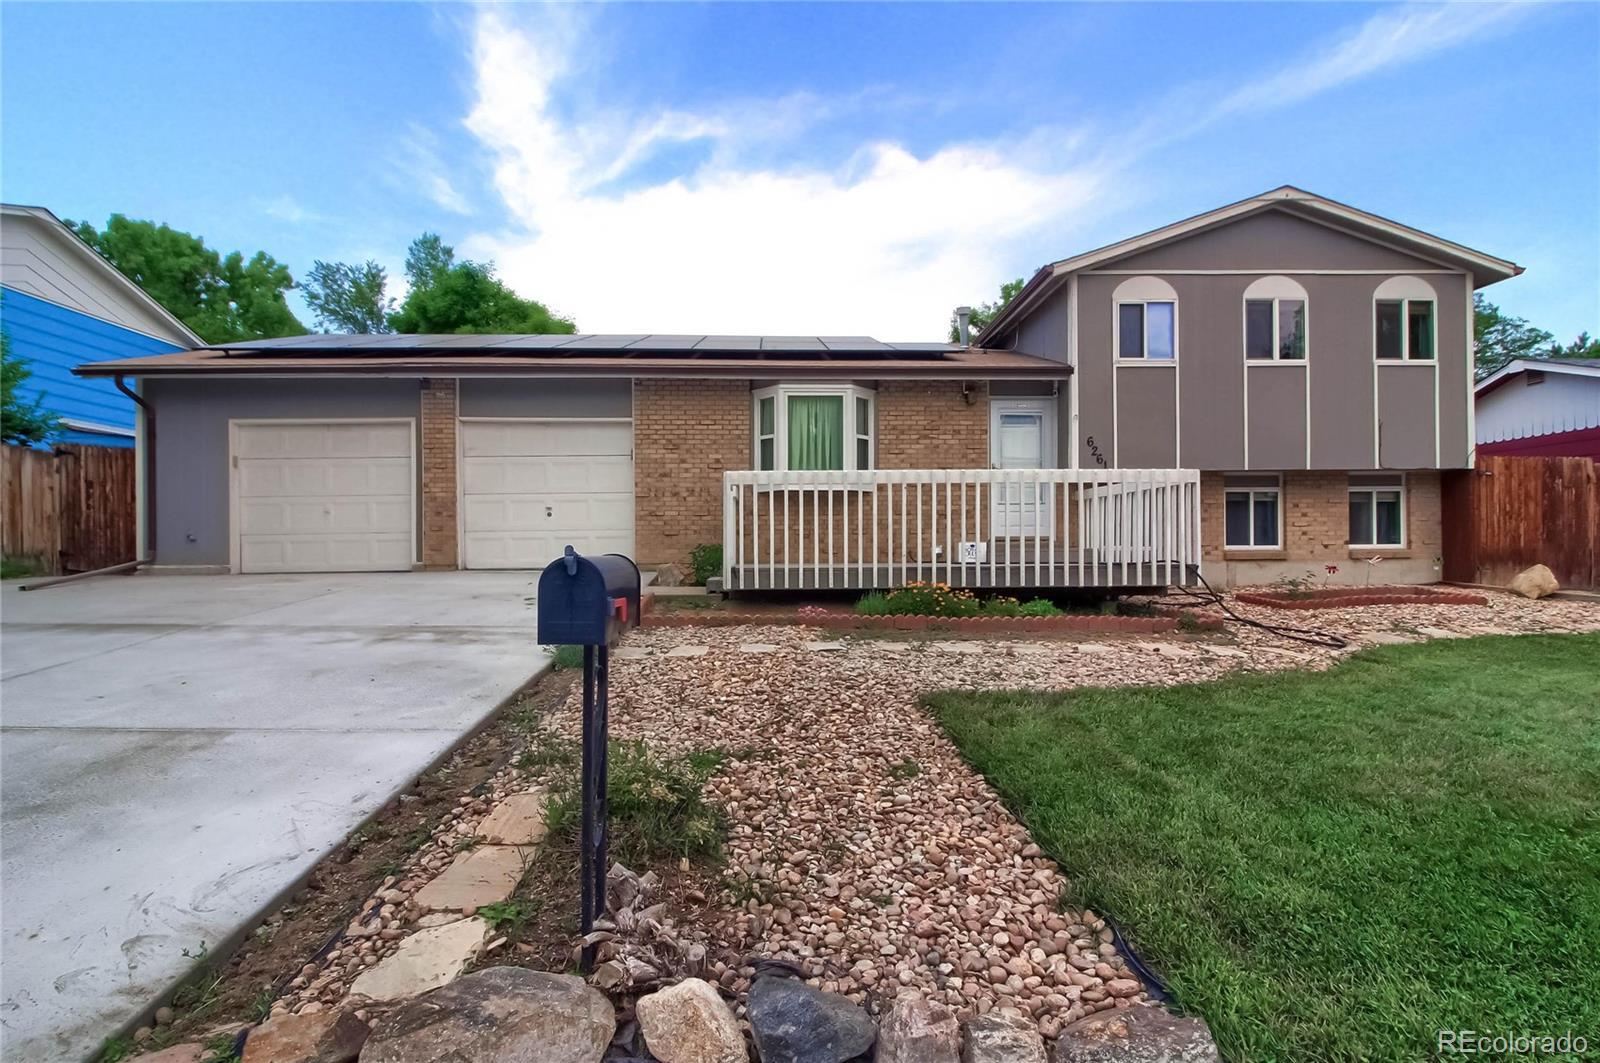 6261 W 70th Place, Arvada, CO 80003 - #: 3144238